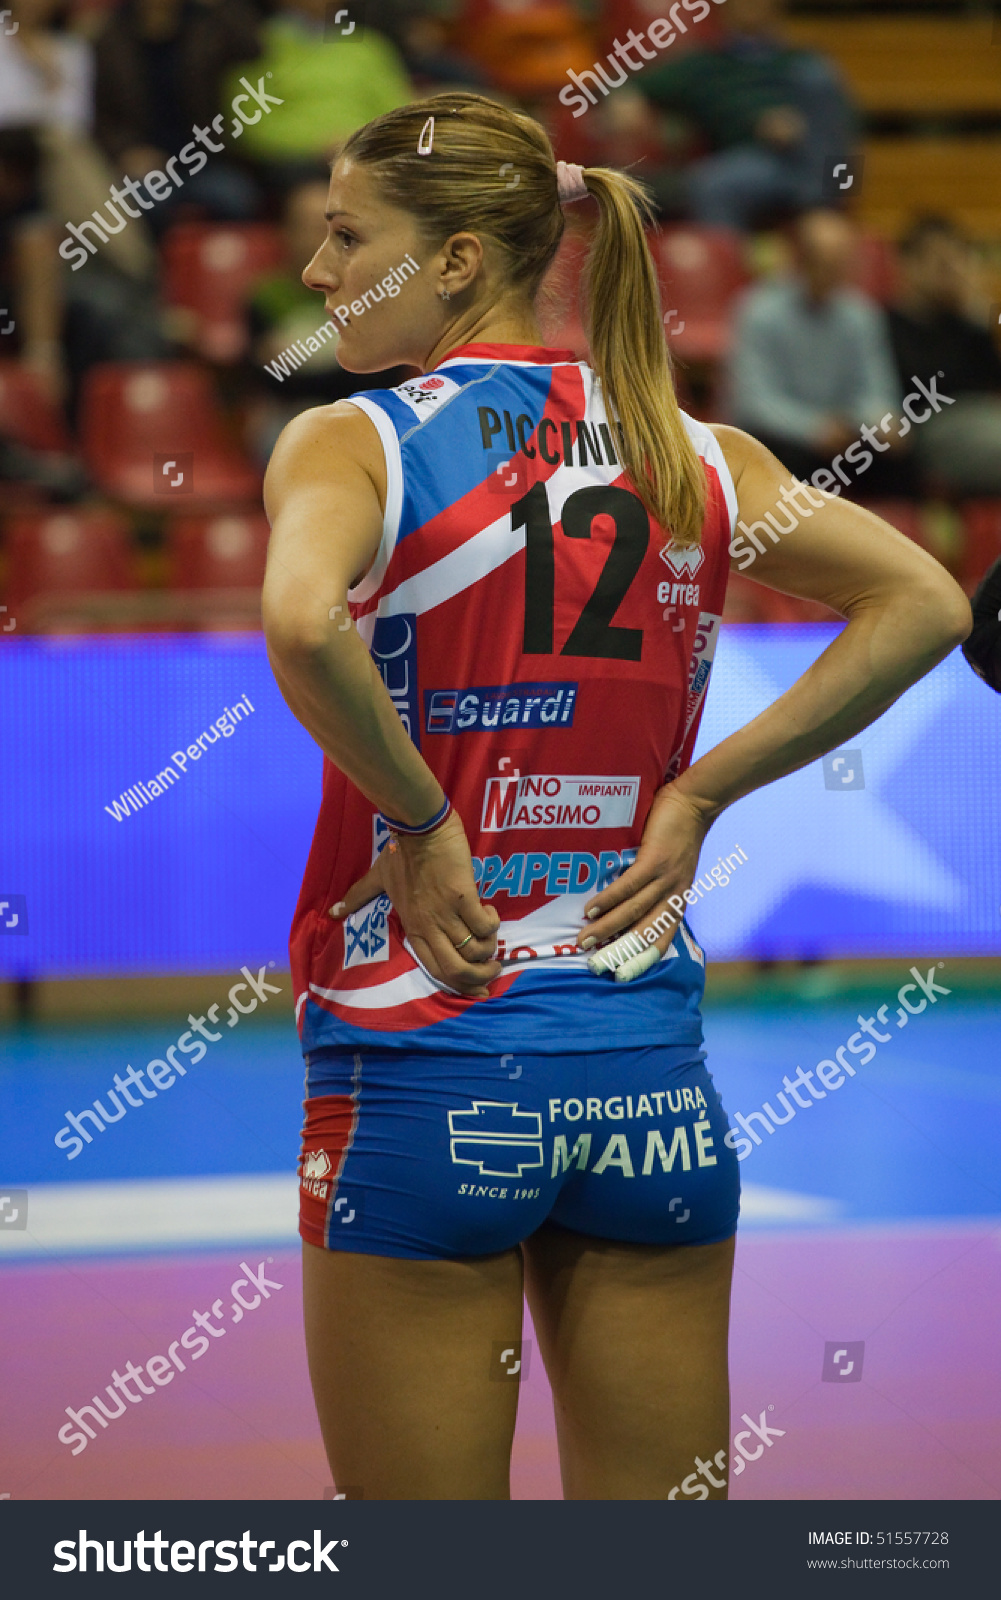 That Volleyball player francesca piccinini apologise